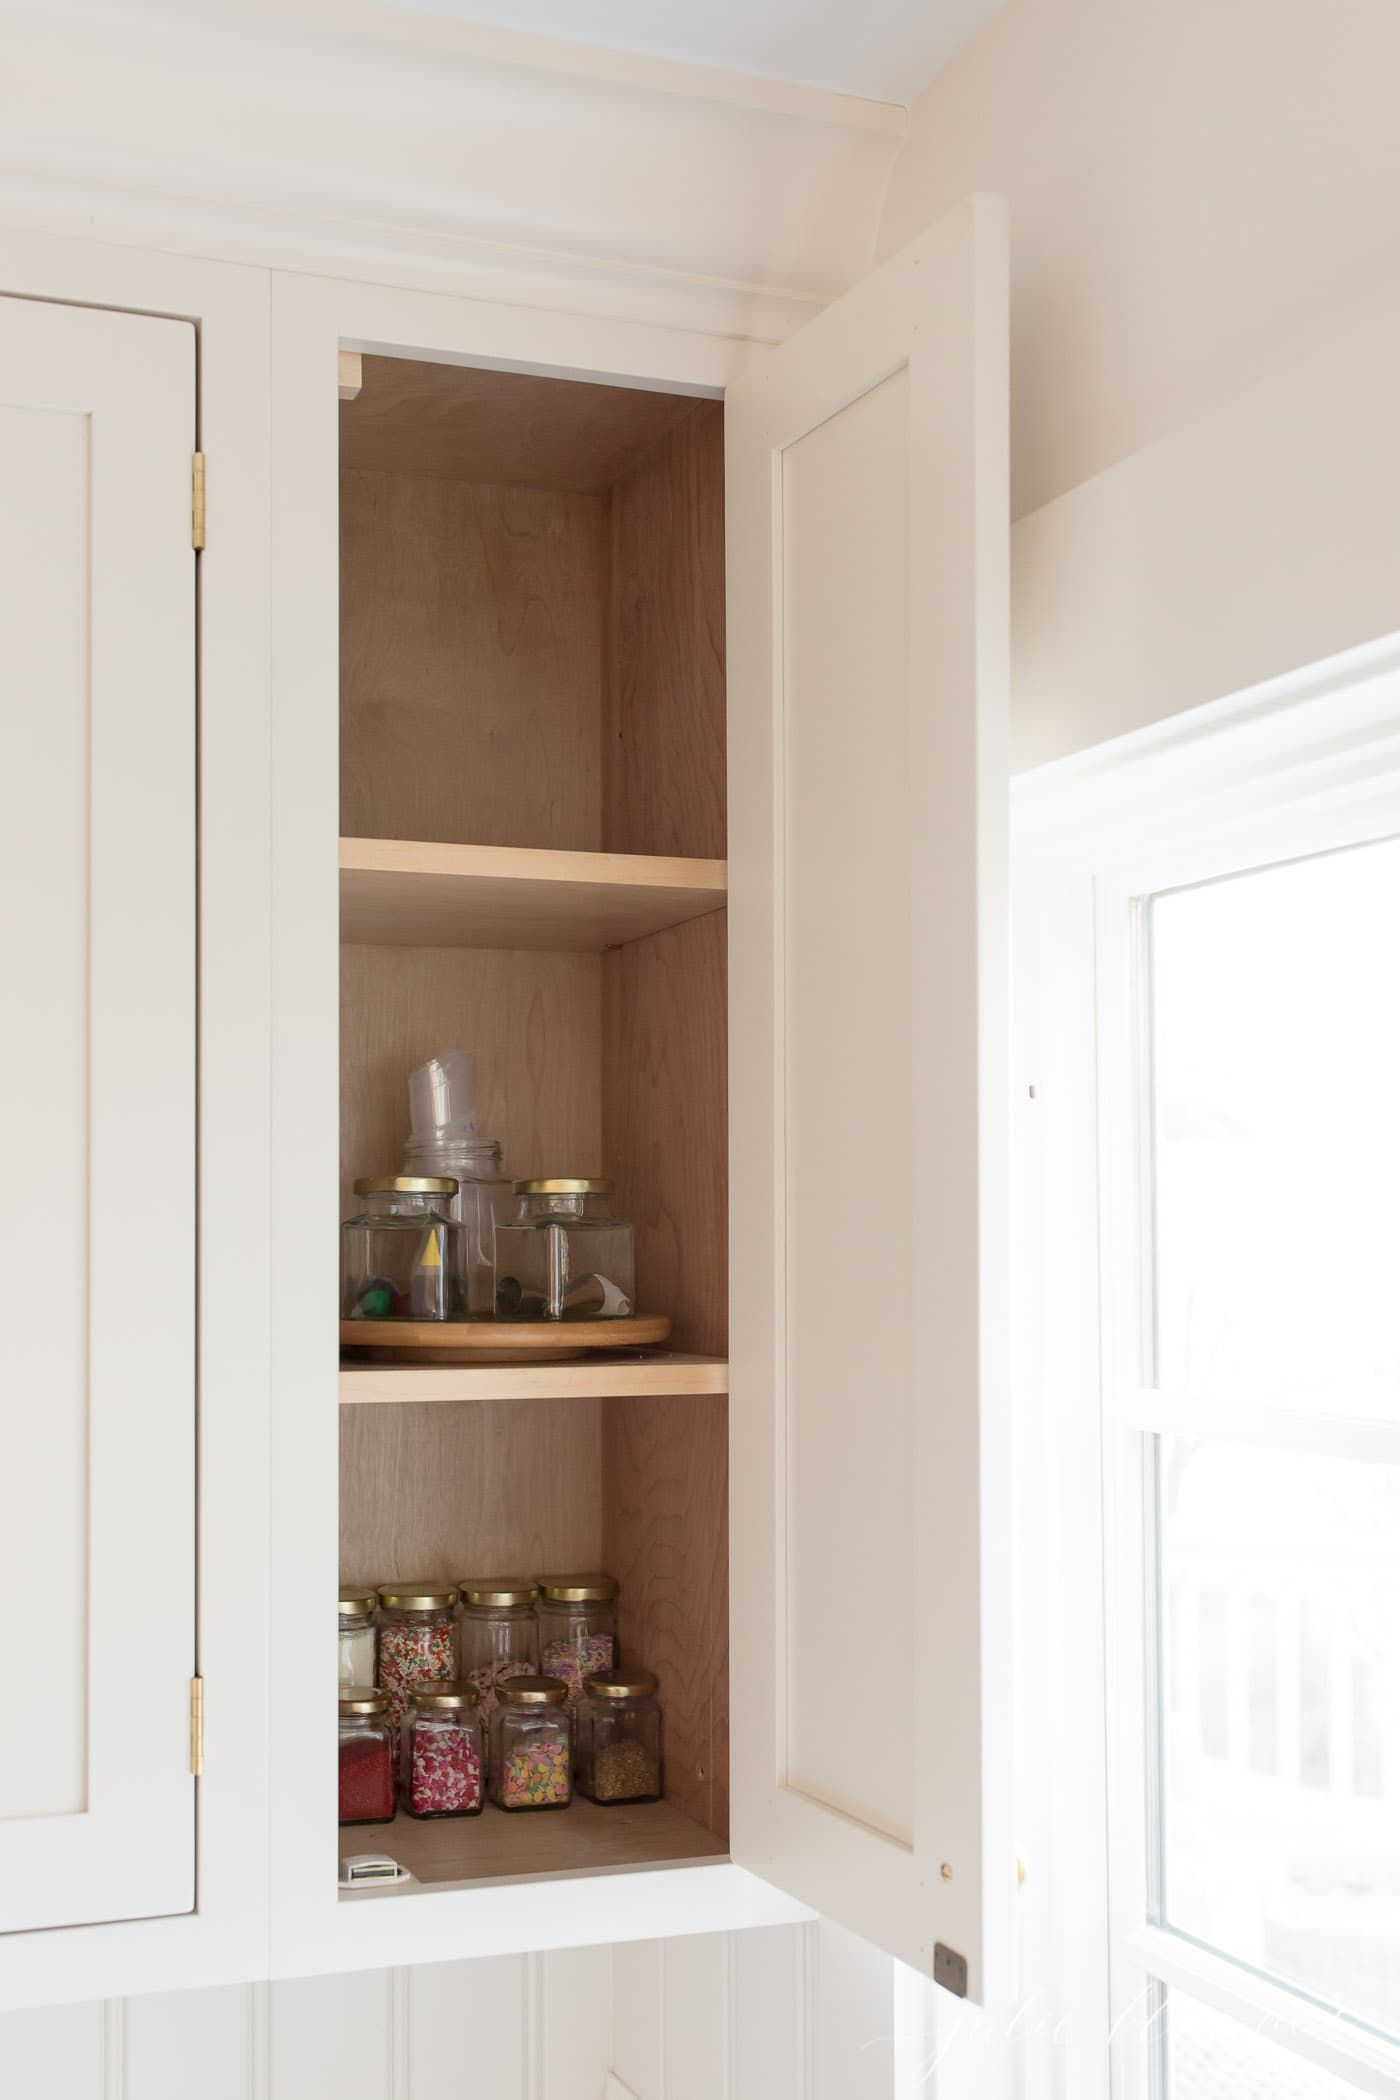 kitchen organization solutions for pantry cabinets drawers refrigerat kitchen cabinet on kitchen cabinets organization layout id=80497